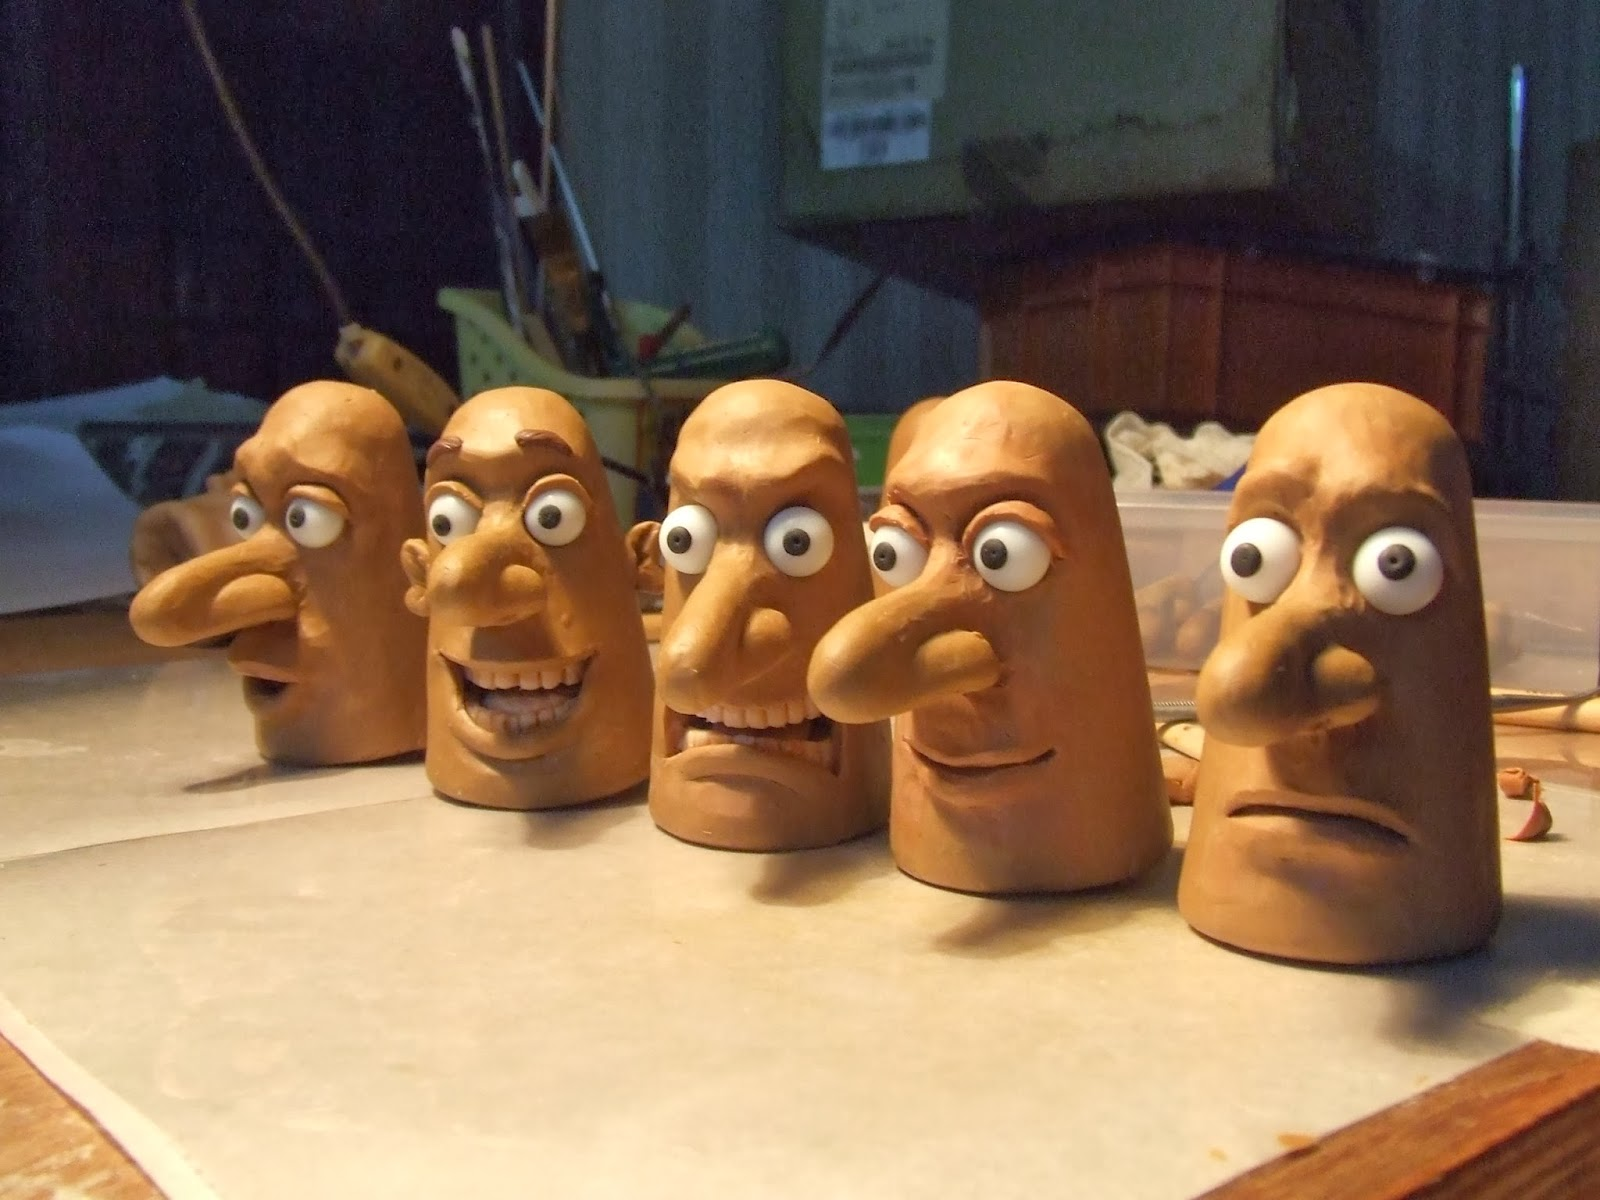 22 best images about clay animation on Pinterest | Models ...